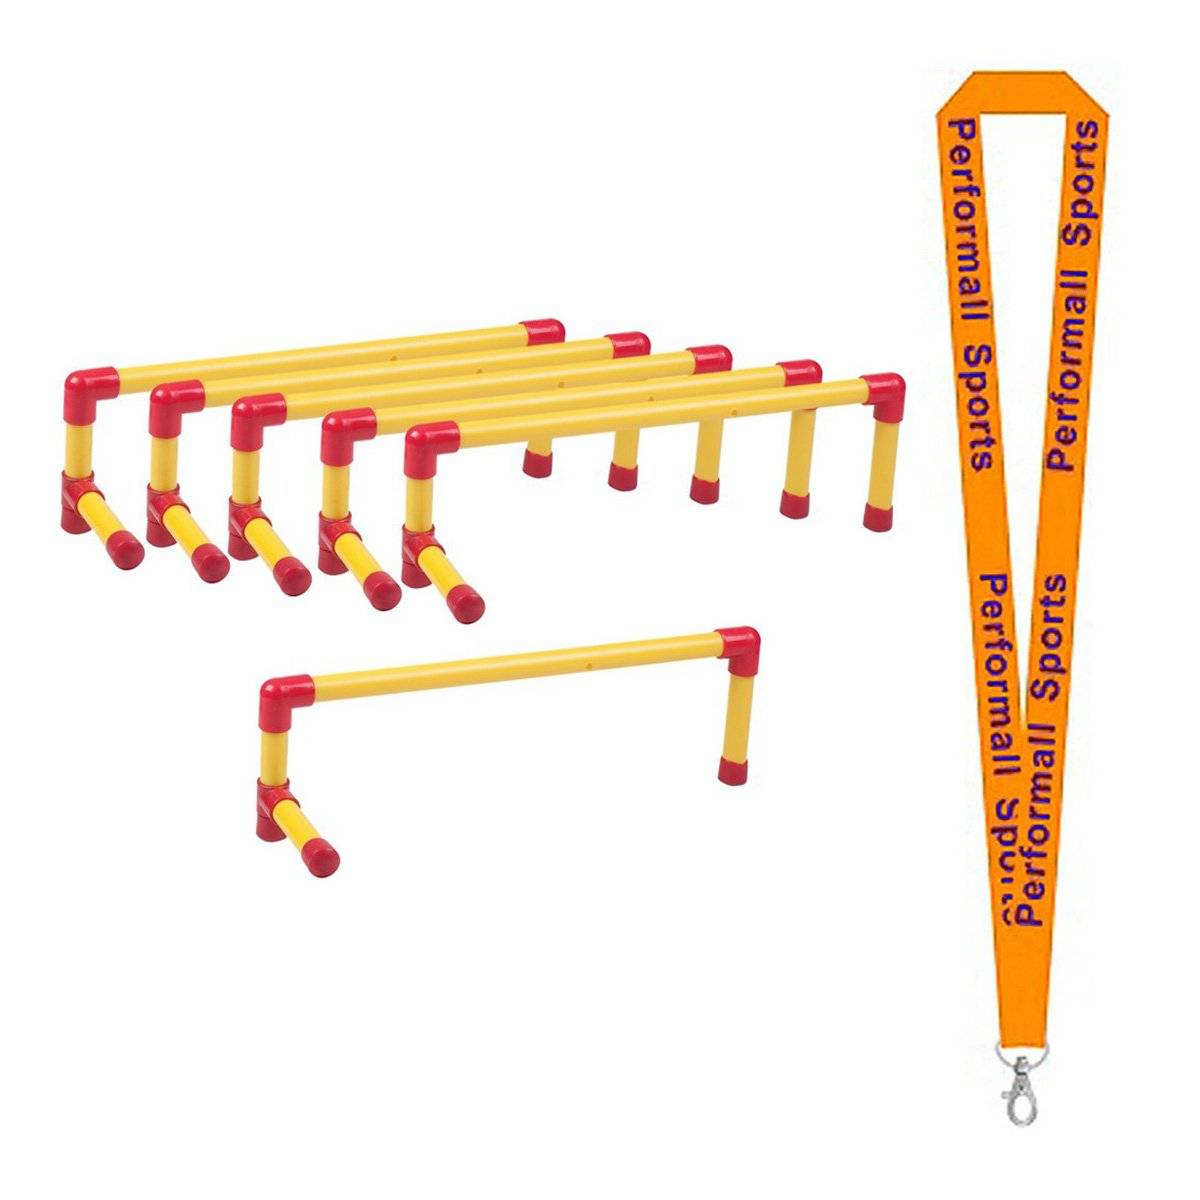 Champion Sports Ultra Hurdle Set Red / Yellow (Set of 6) with 1 Performall Lanyard UH6SET-1P by Performall Sports Speed Agility Training